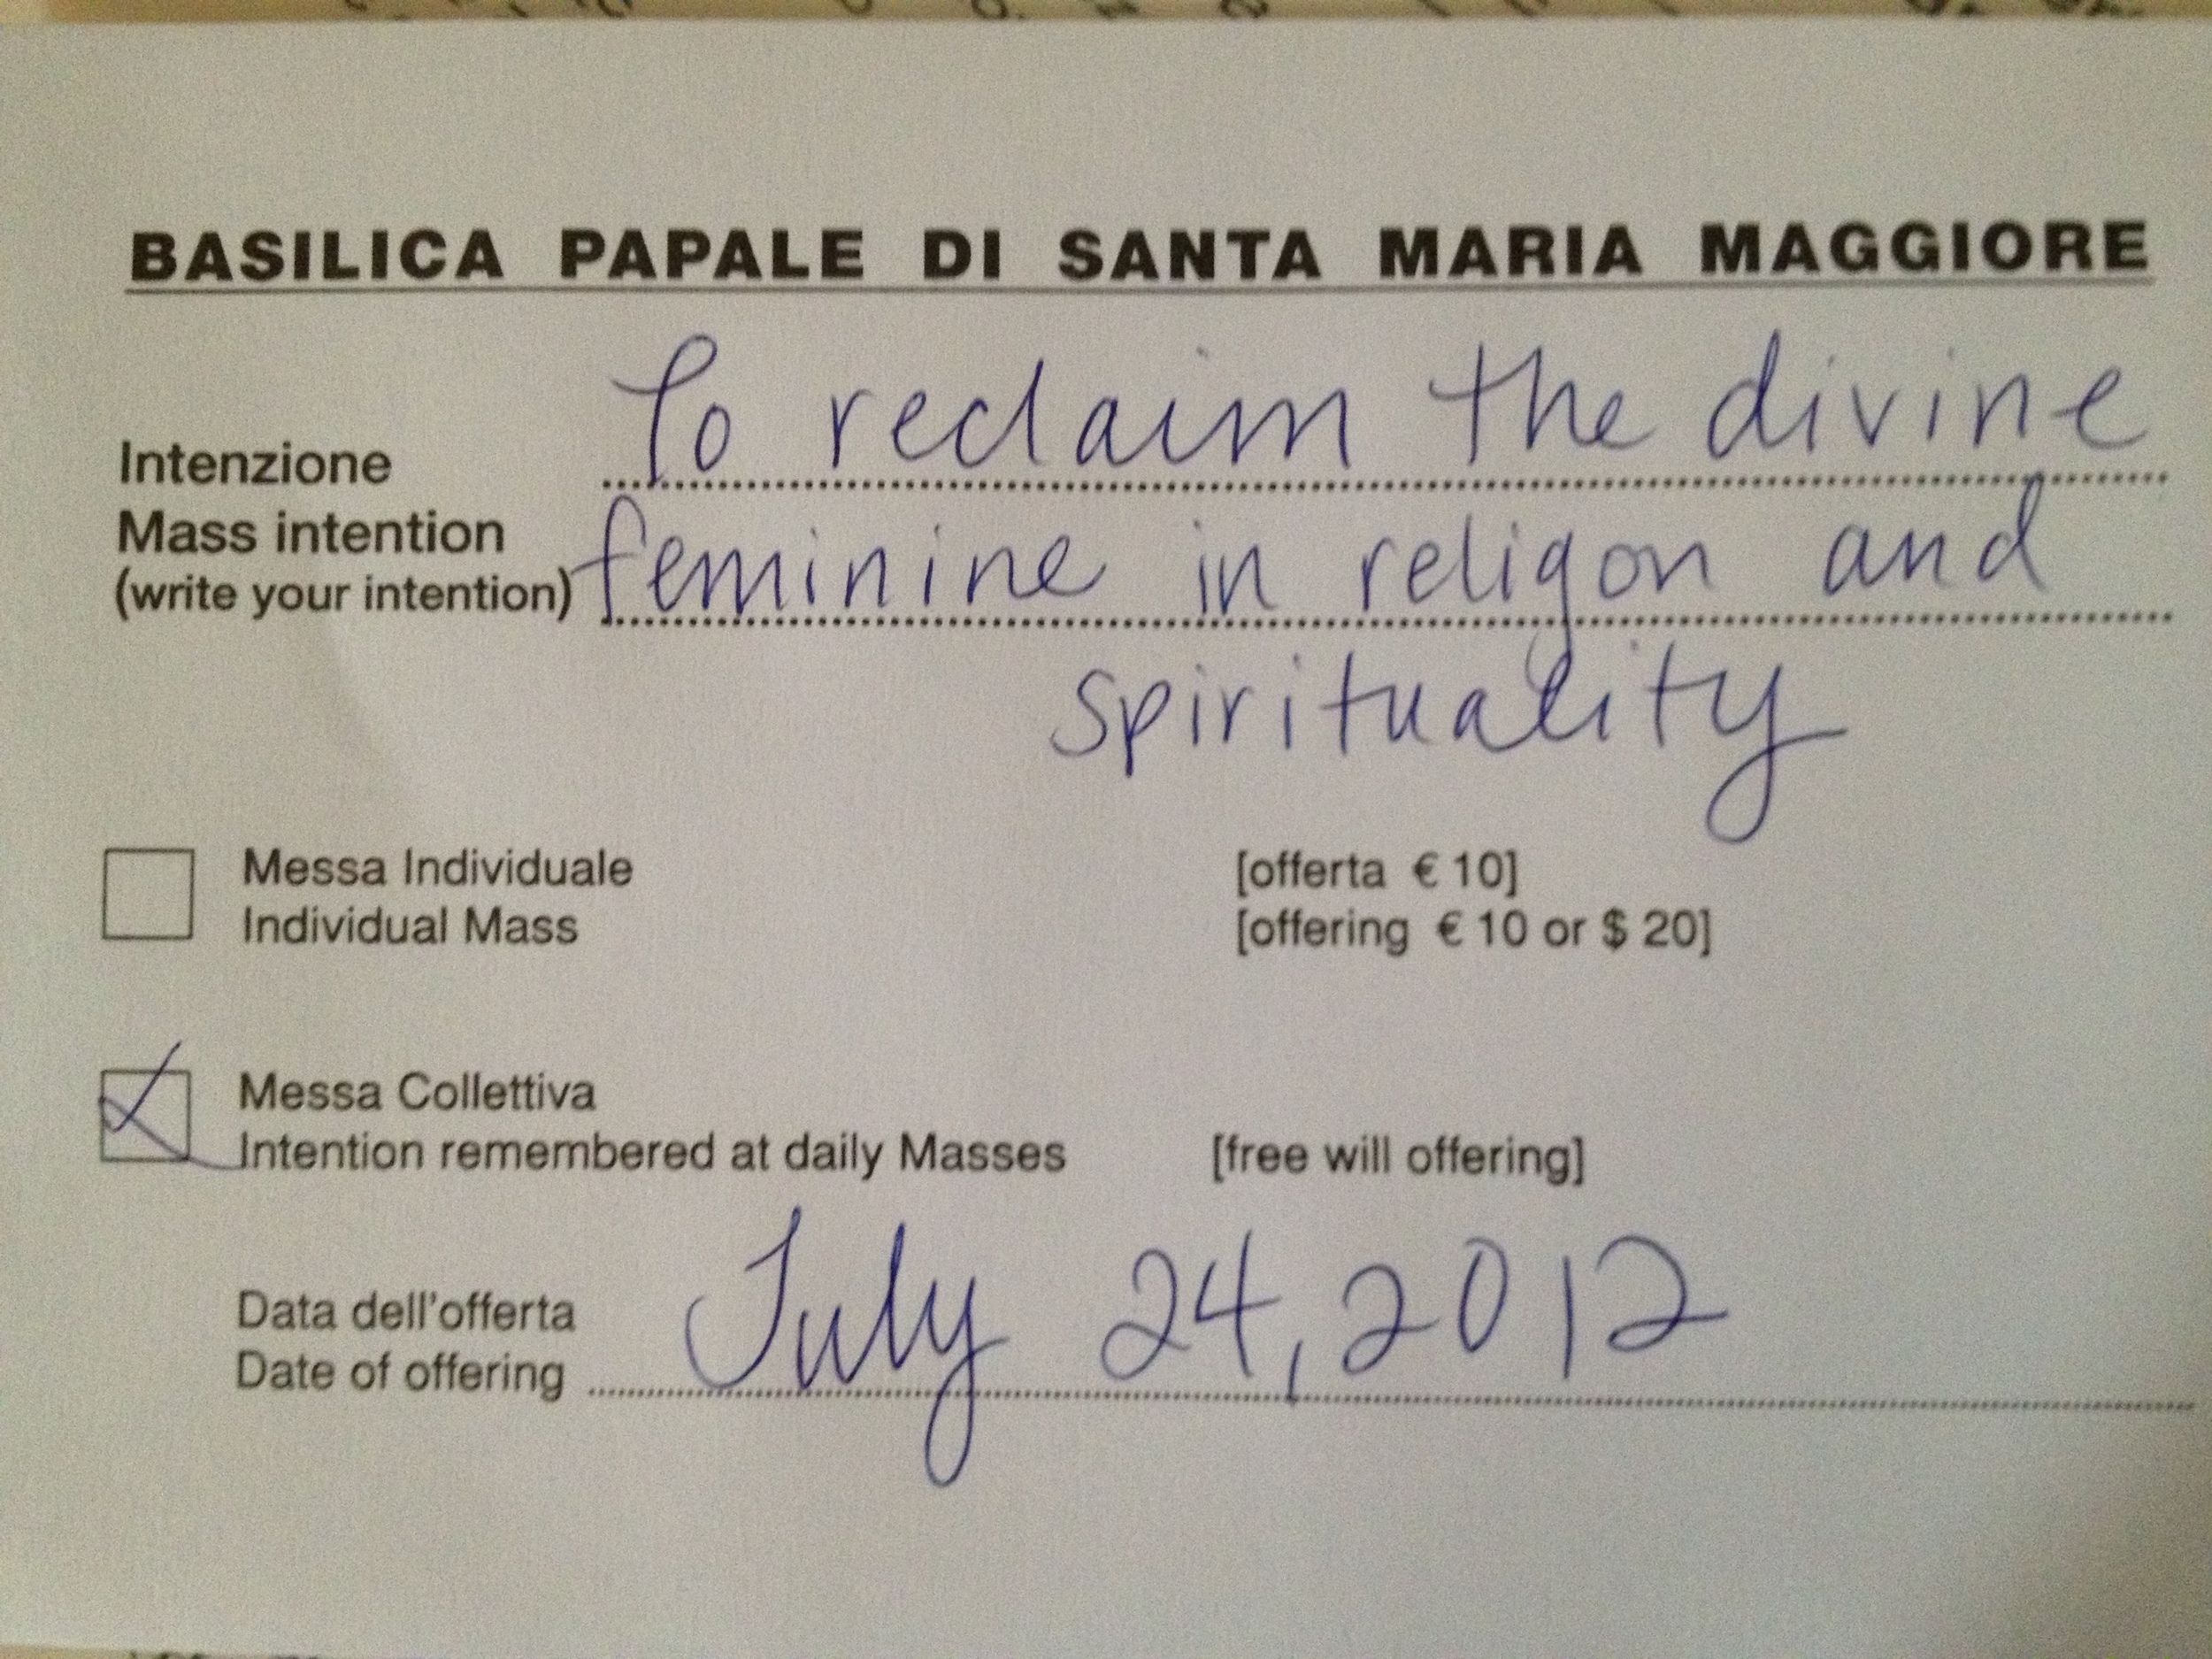 Rochelle's intention on the first day of her pilgrimage at Santa Maria Maggiore, the largest basilica devoted to Mary in the world